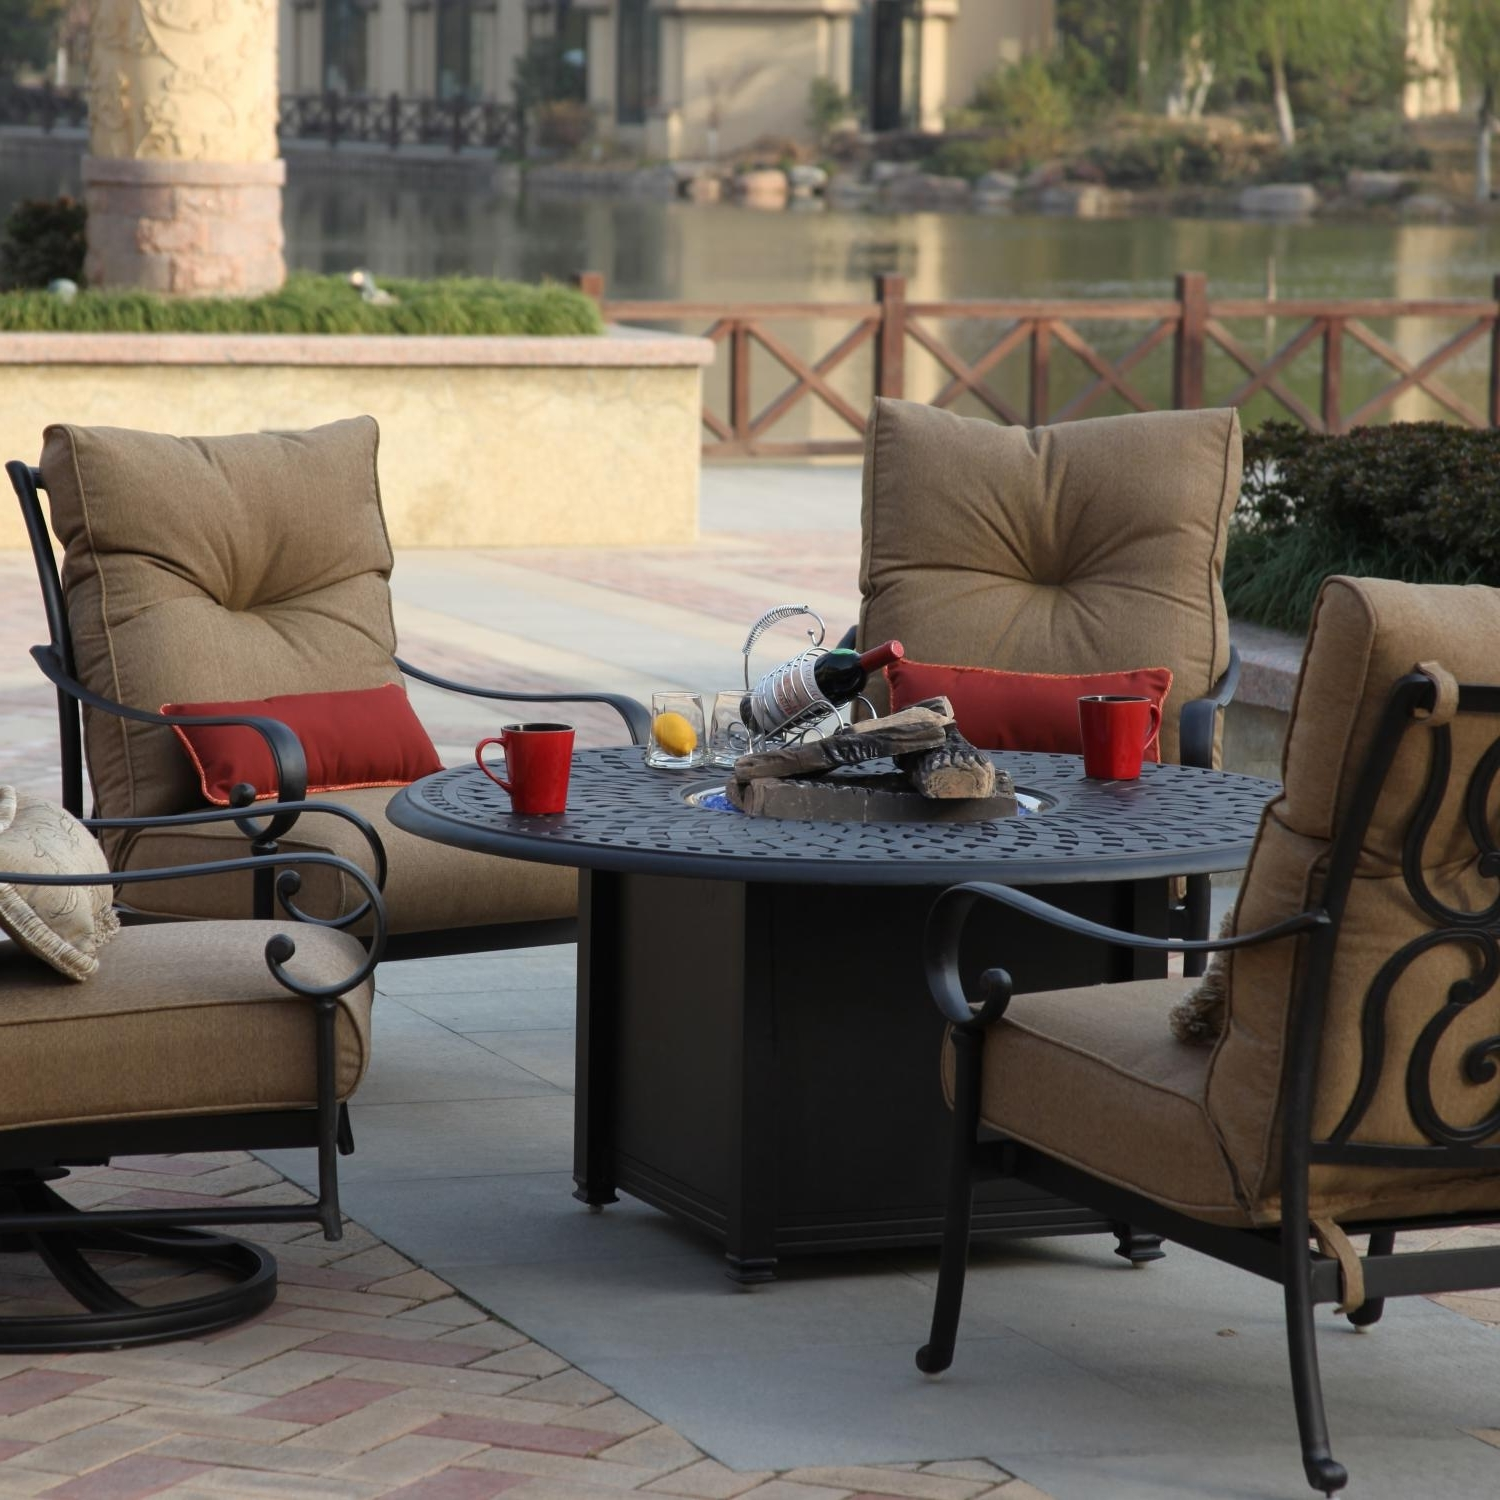 Trendy Deep Seating Patio Conversation Sets In Darlee Santa Anita 5 Piece Patio Fire Pit Seating Set (View 2 of 15)